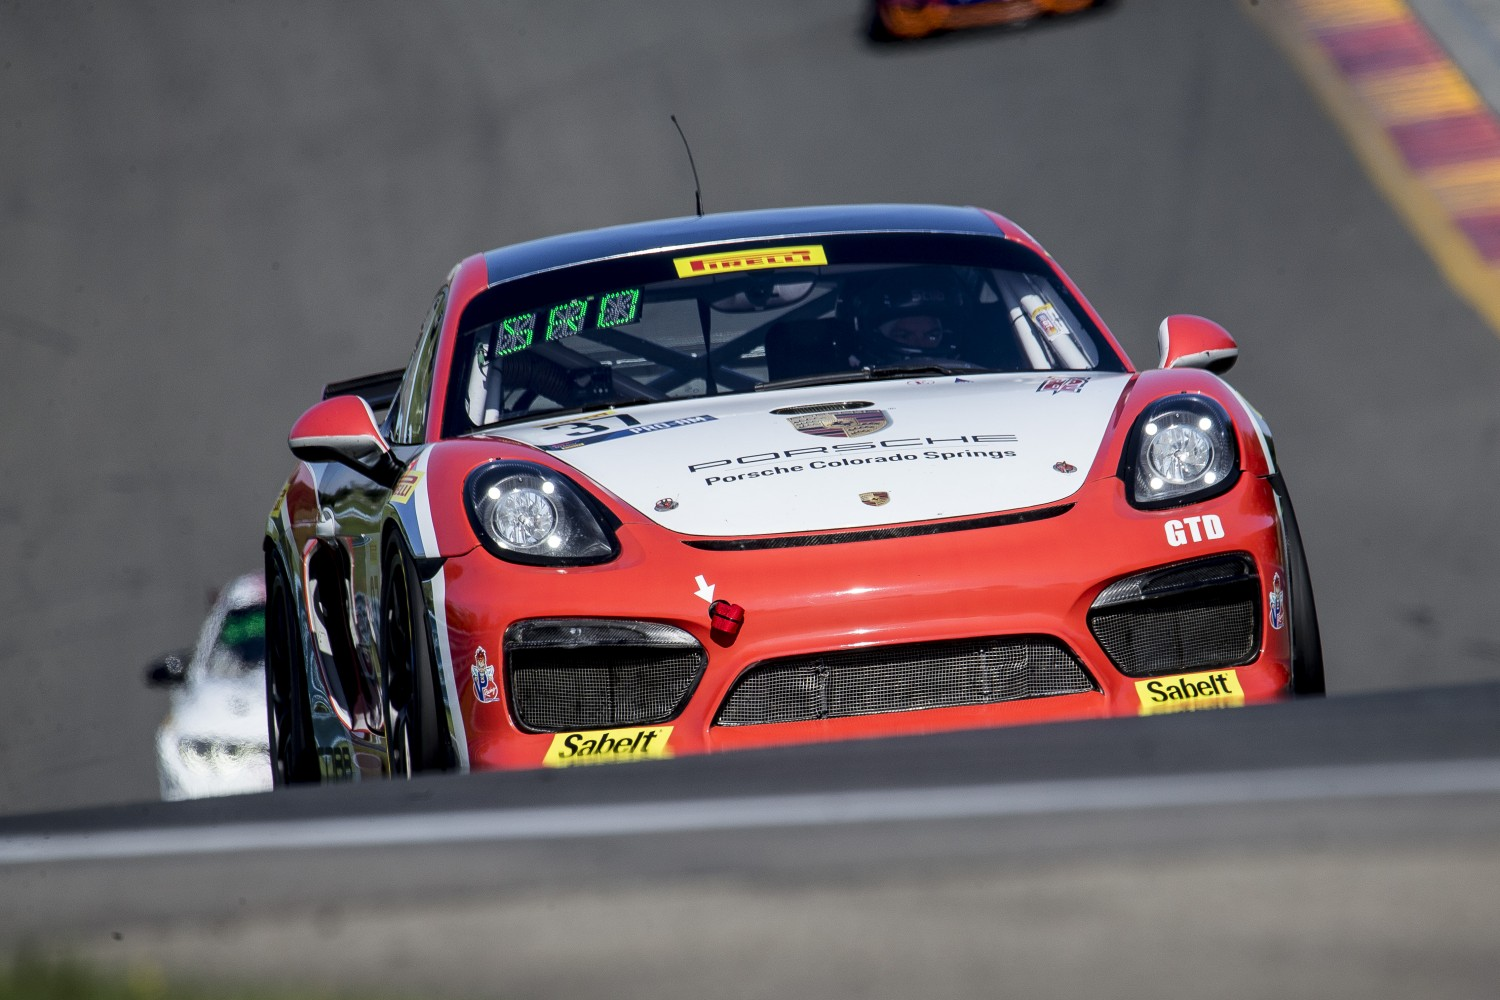 #37 Porsche Cayman GT4 CS-MR of Charlie Bellaurdo and Jan Heylen, RS1, Watkins Glen World Challenge America, Watkins Glen NY  | Brian Cleary/SRO